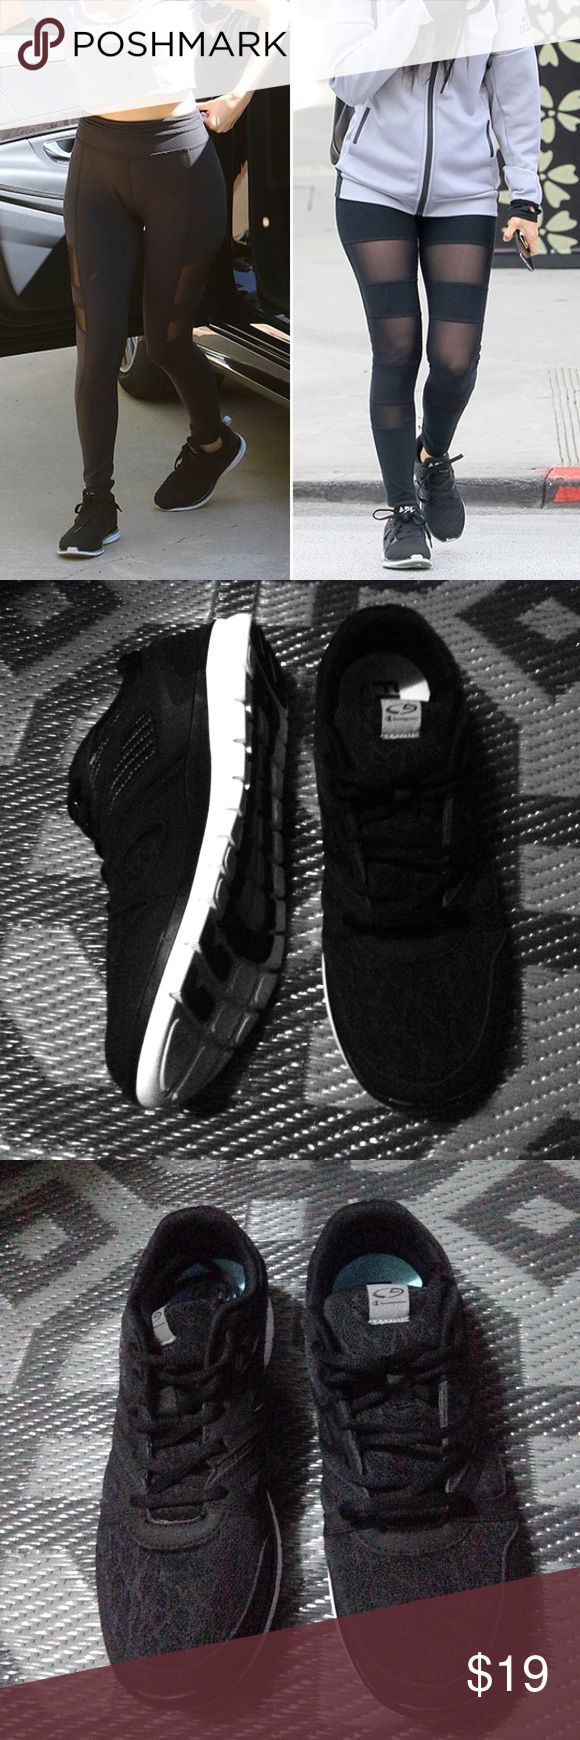 Black Athletic Shoes Flex foam run, go jogging or just get the sporty look ❤️ Cover image is not for sale. Champion Shoes Athletic Shoes